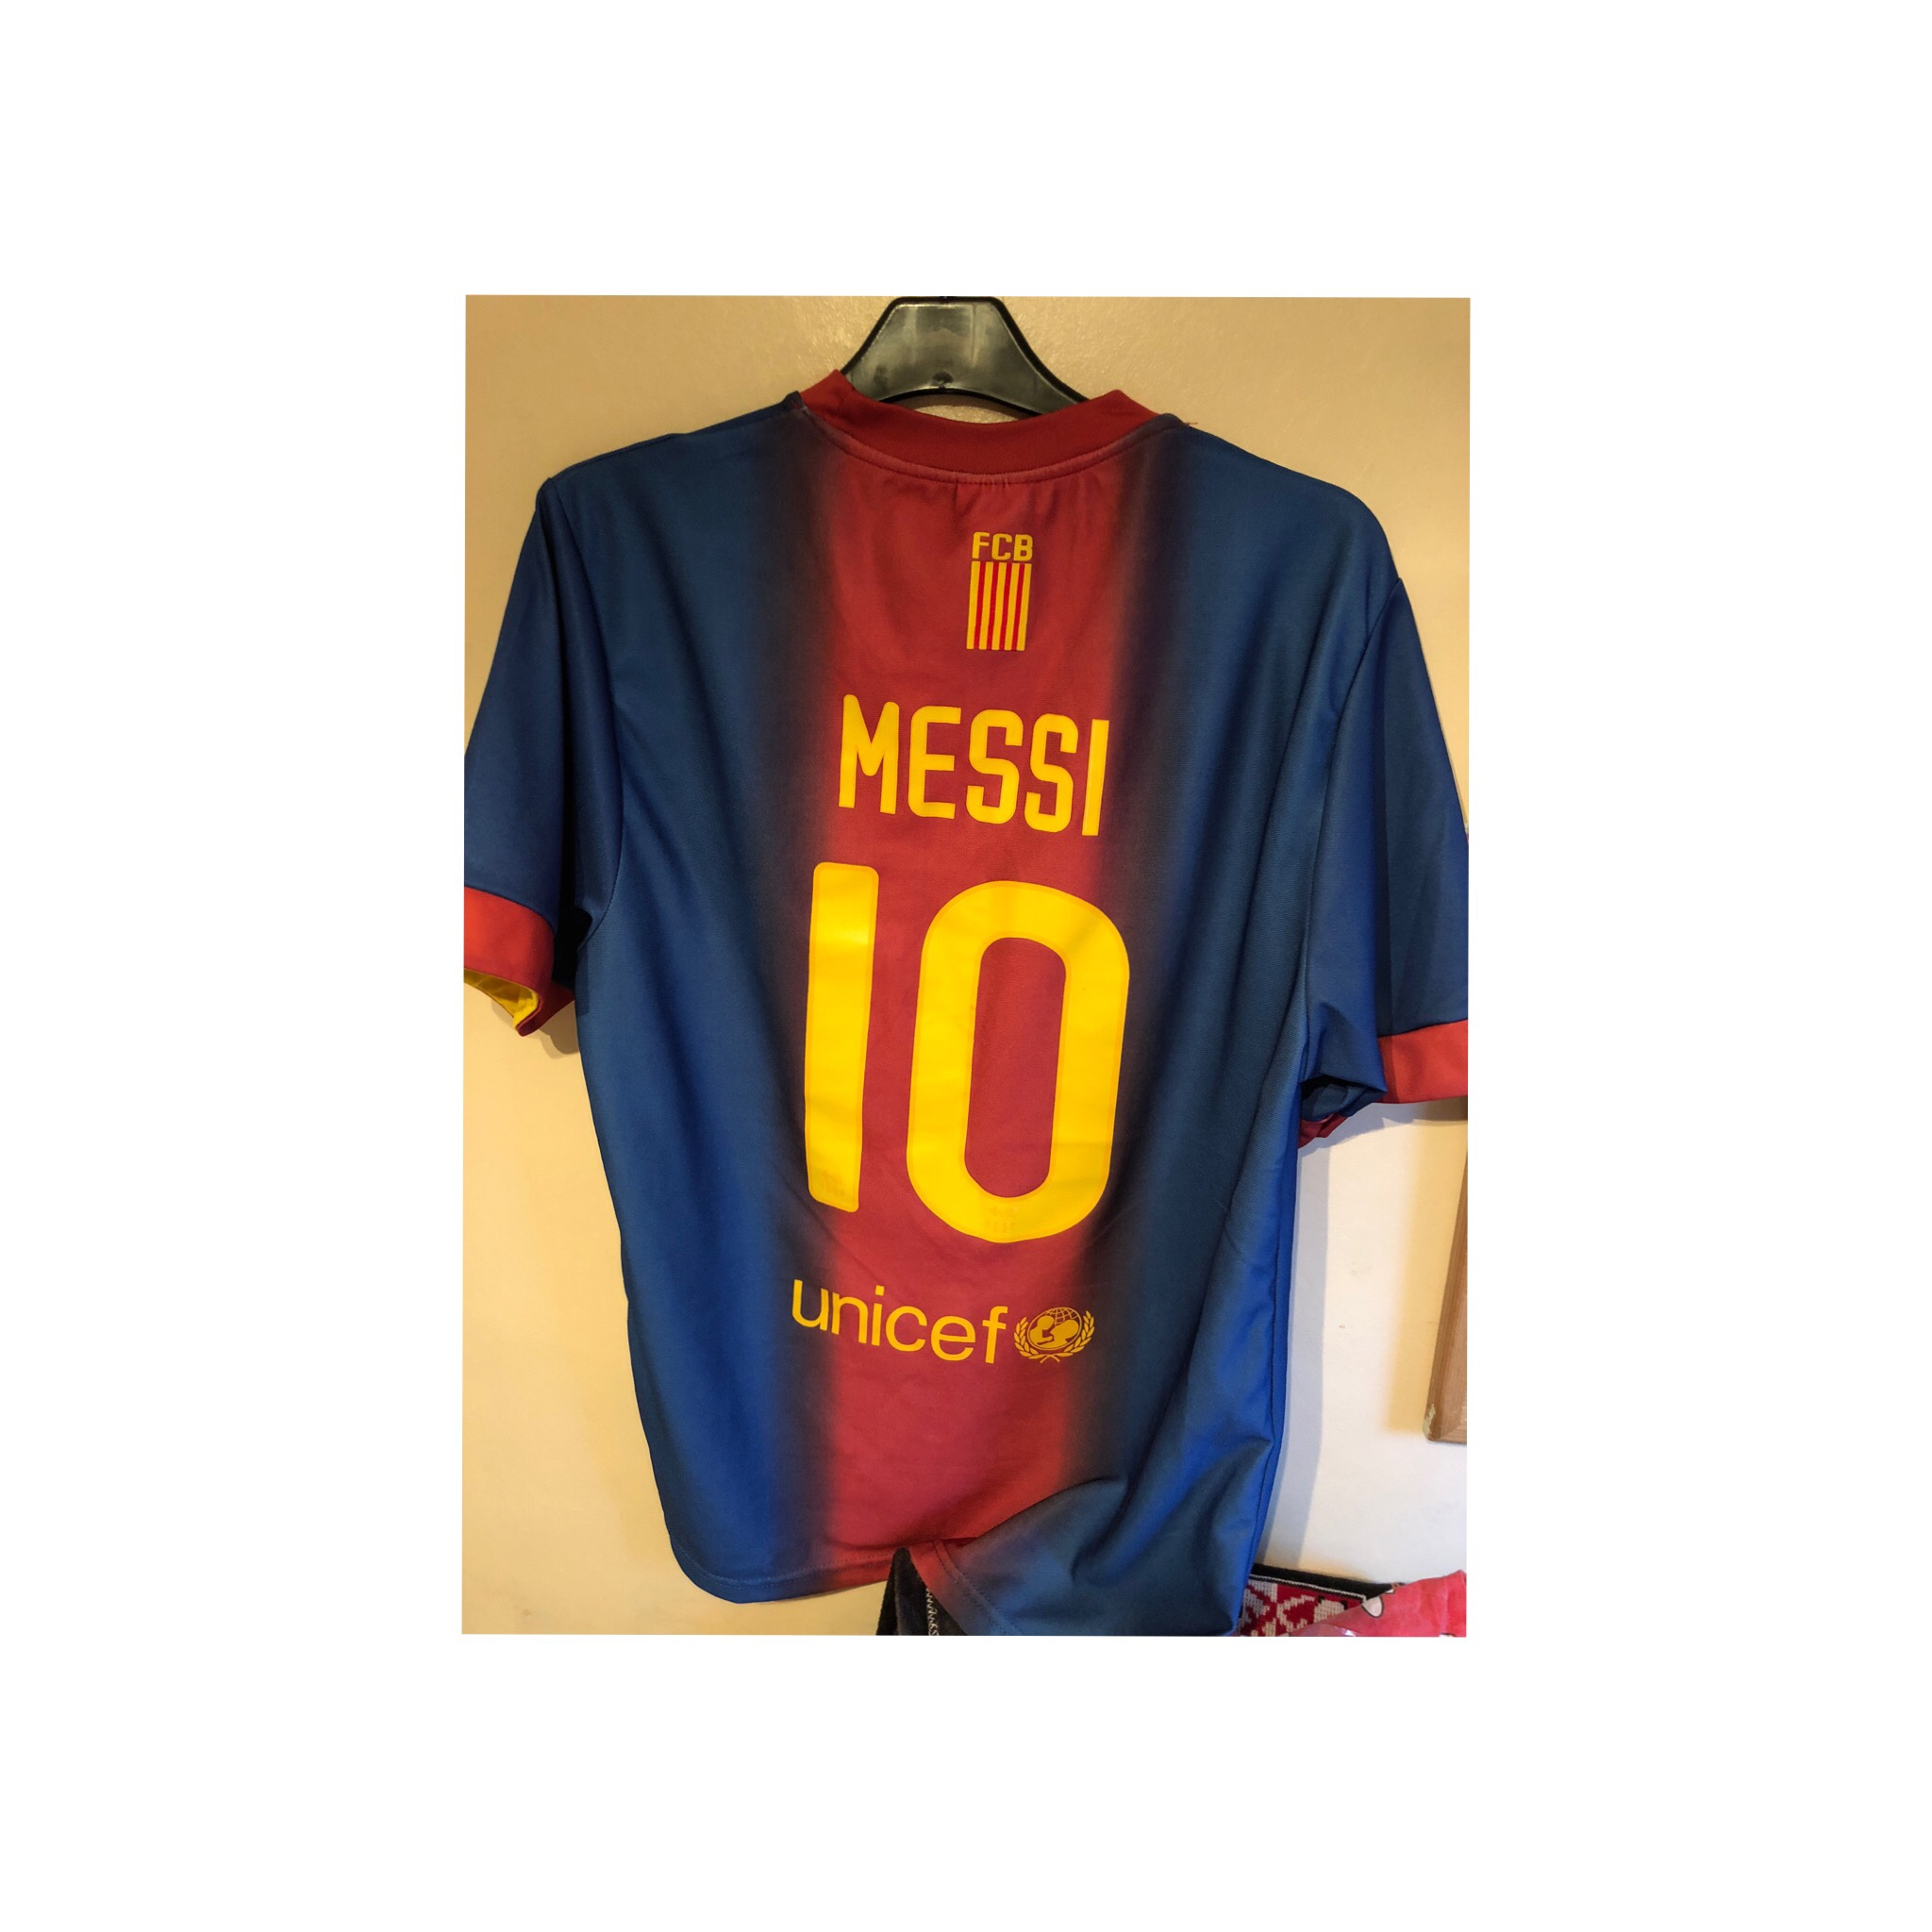 online retailer d41fb 658d0 Barcelona home 2012/13 kit. Good condition with... - Depop